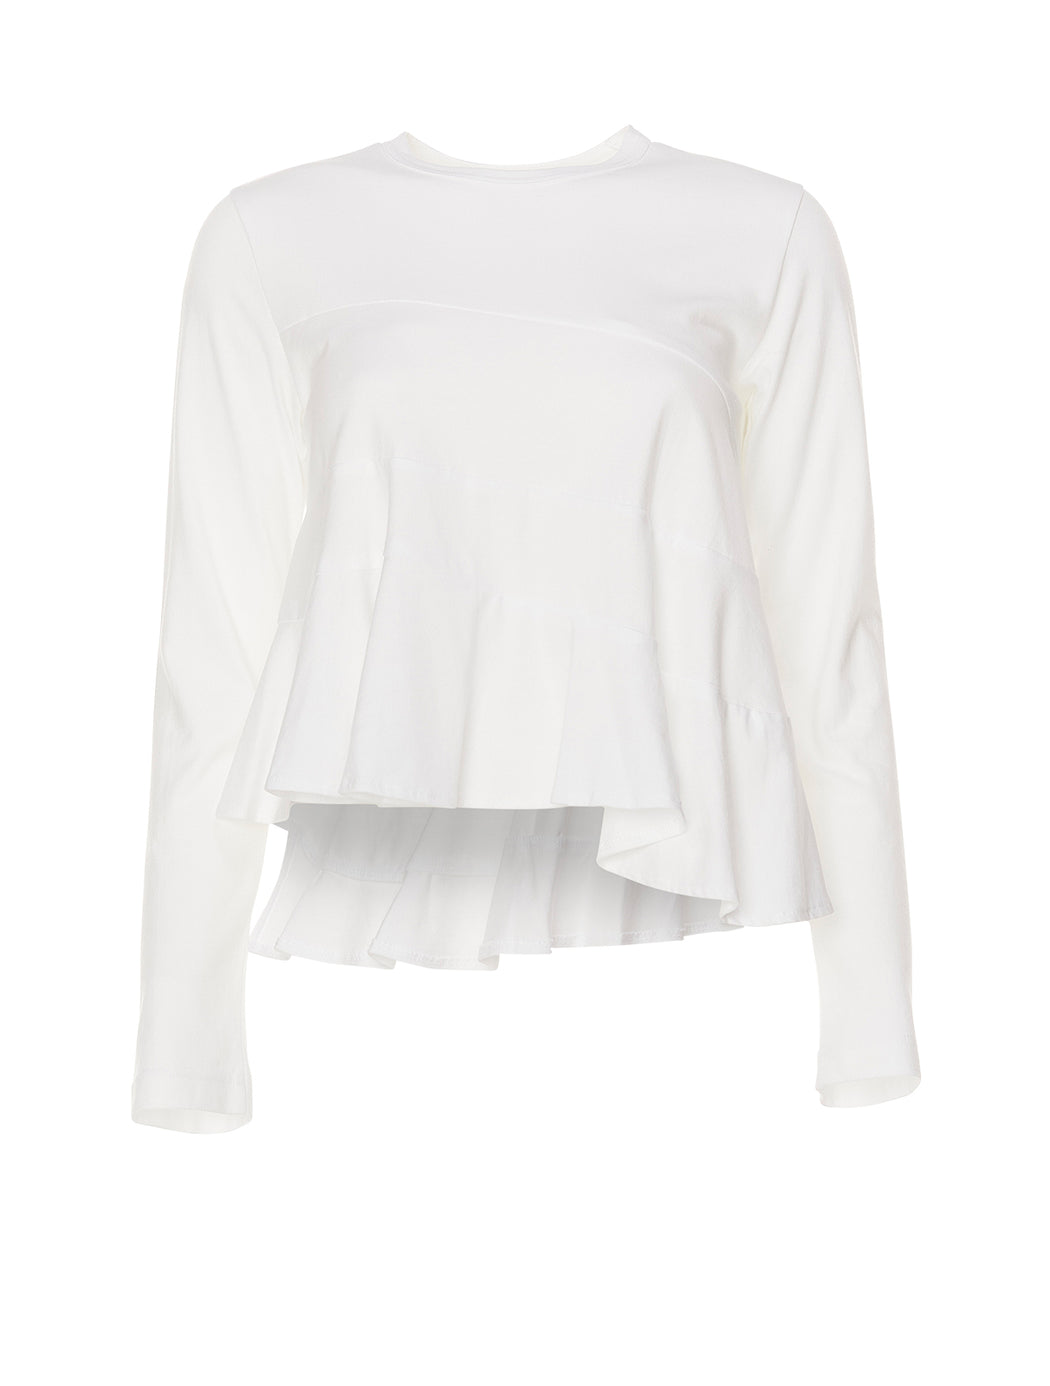 Tiered Frill Long Sleeve T-Shirt